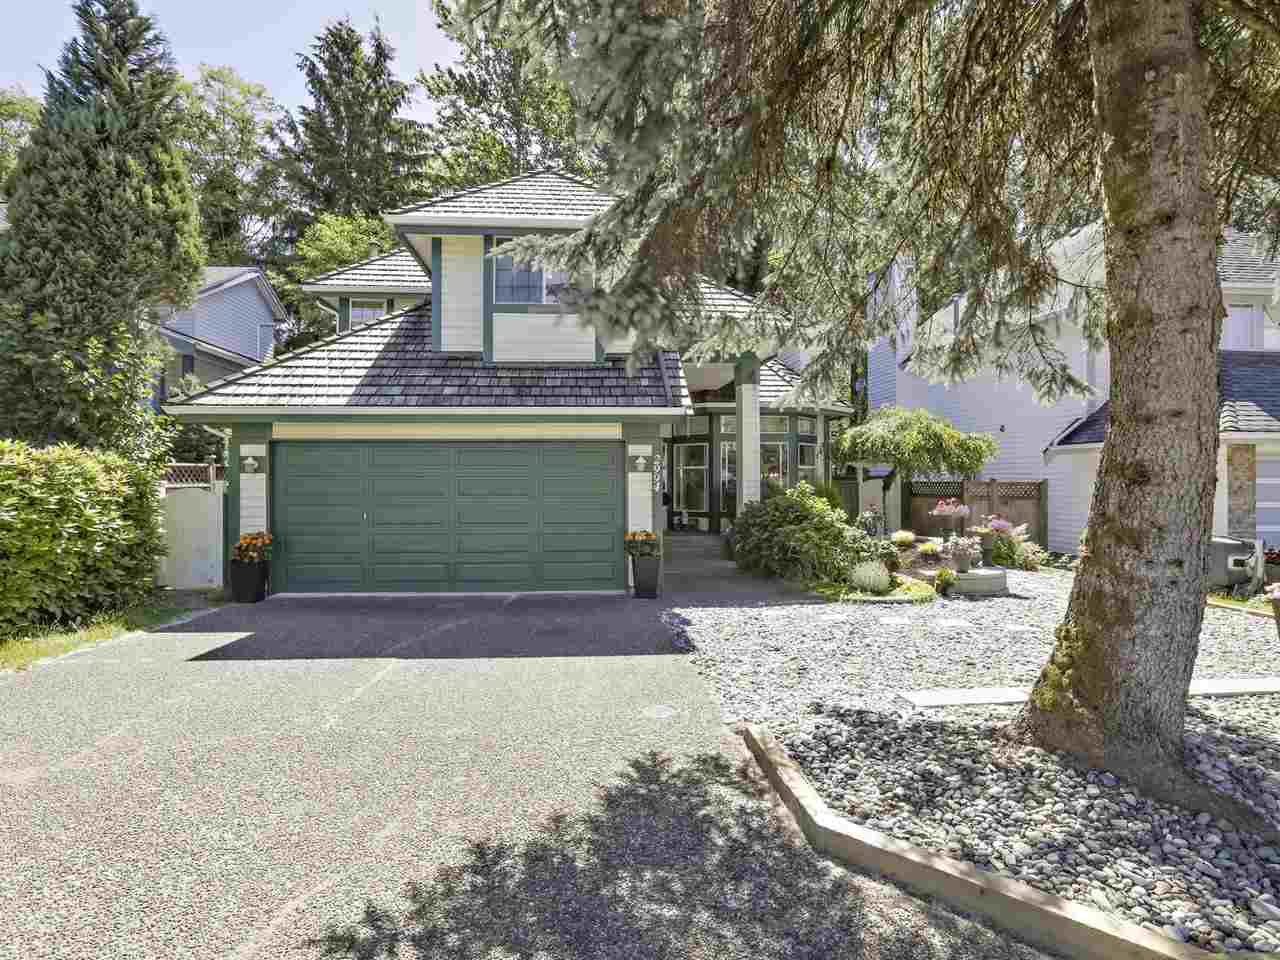 Main Photo: 2994 WALTON Avenue in Coquitlam: Canyon Springs House for sale : MLS®# R2379194